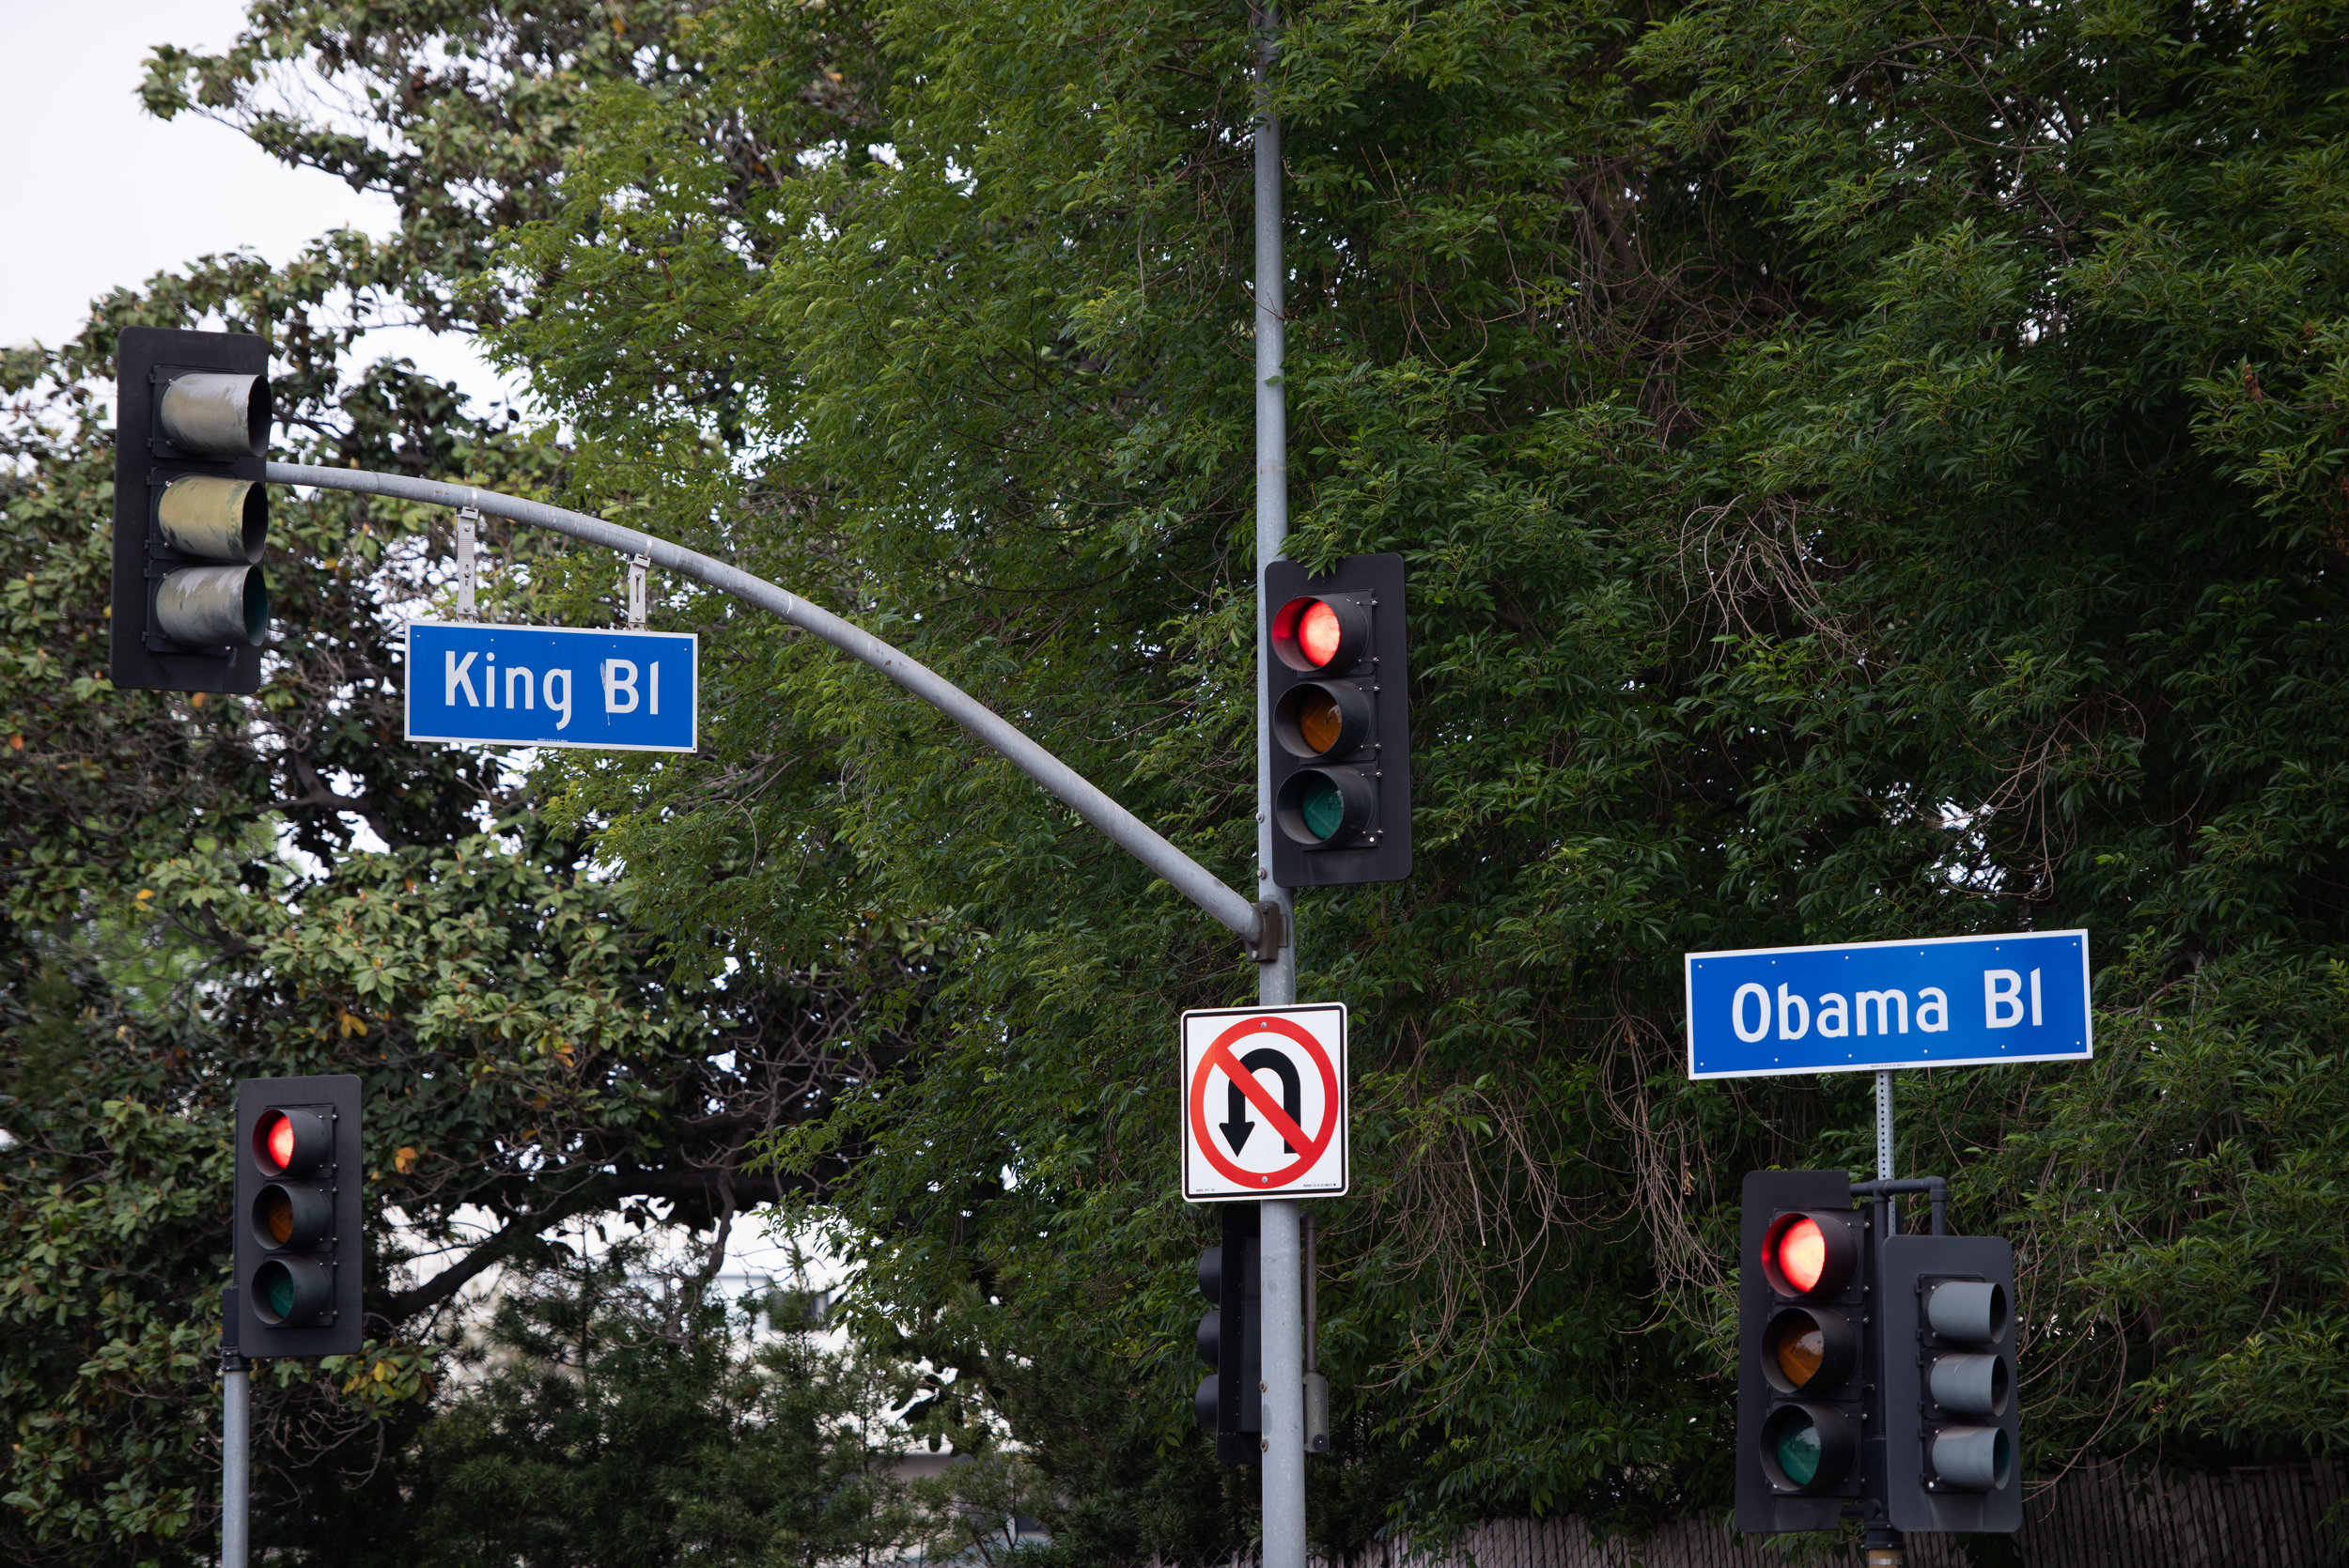 Celebration of Obama drive on May 4, 2019 in Baldwin Hills California at 5 PM